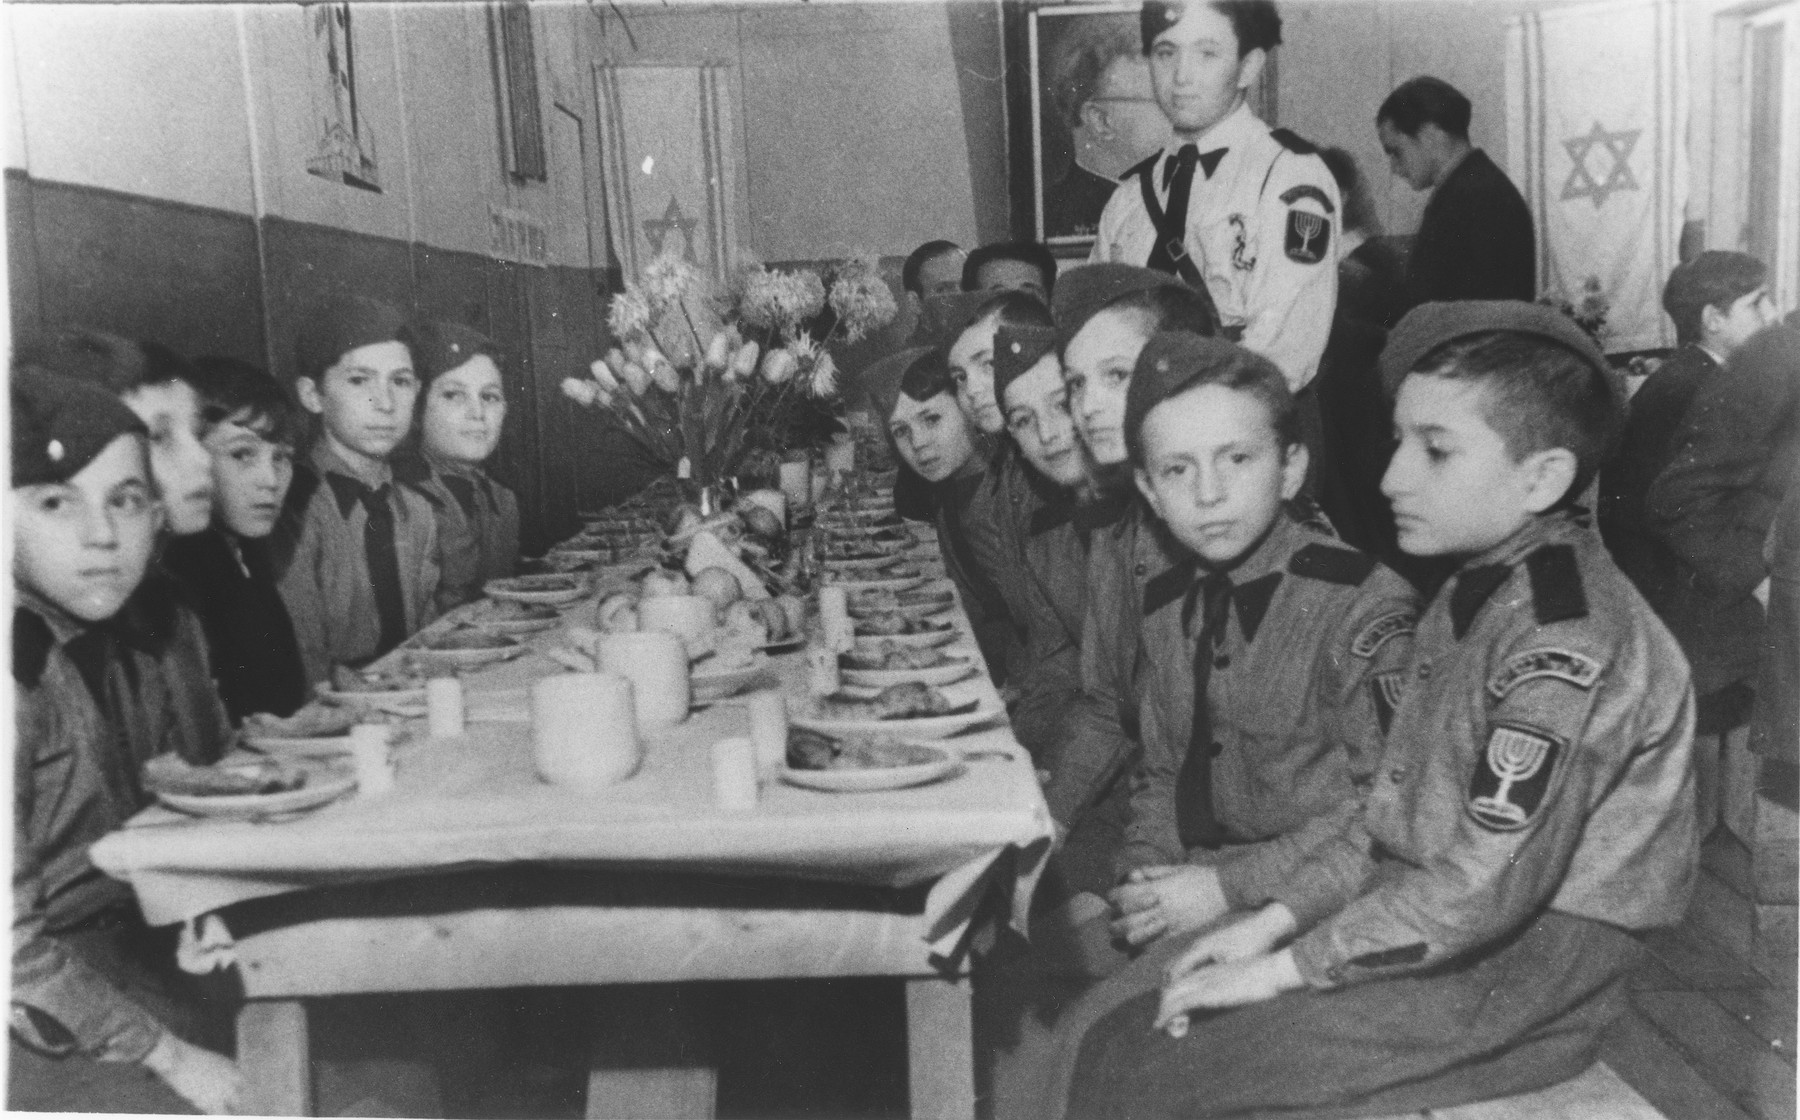 Young boys dressed in Betar Zionist youth uniforms, are about to eat a meal in the dining room of the Schlachtensee displaced persons camp.  Yeshayhu Zycer is pictured standing in front of the portrait of Zev Jabotinsky, founder of the Betar Zionist youth movement.